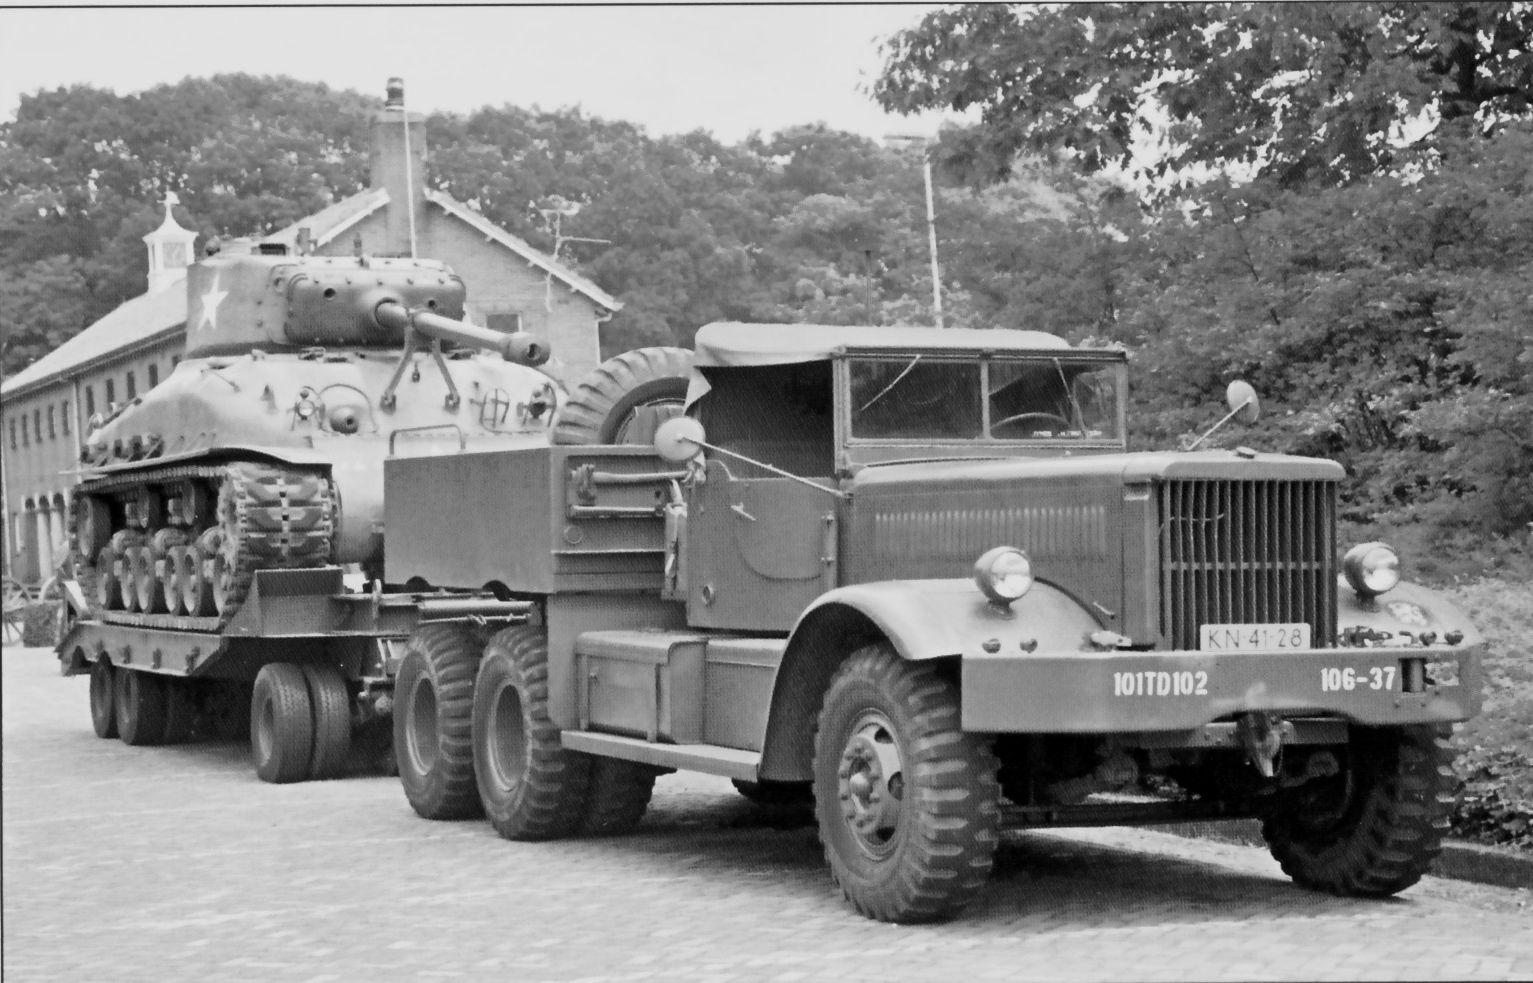 tm w b diamond tanktransporter commons file wikimedia wiki